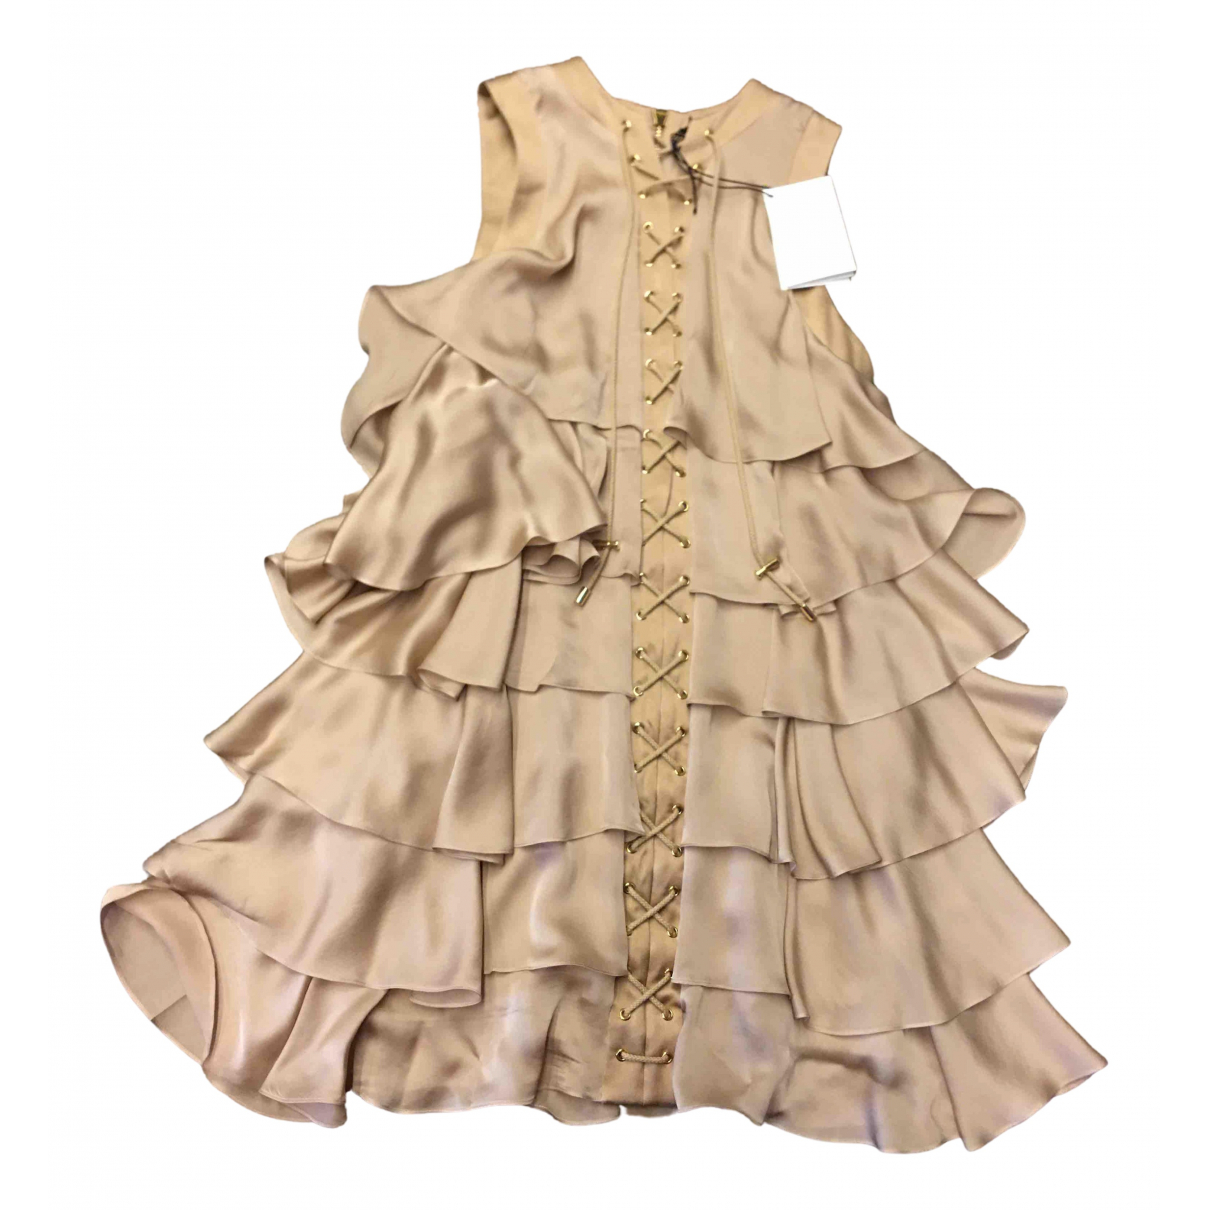 Balmain \N Beige Silk dress for Women 40 IT